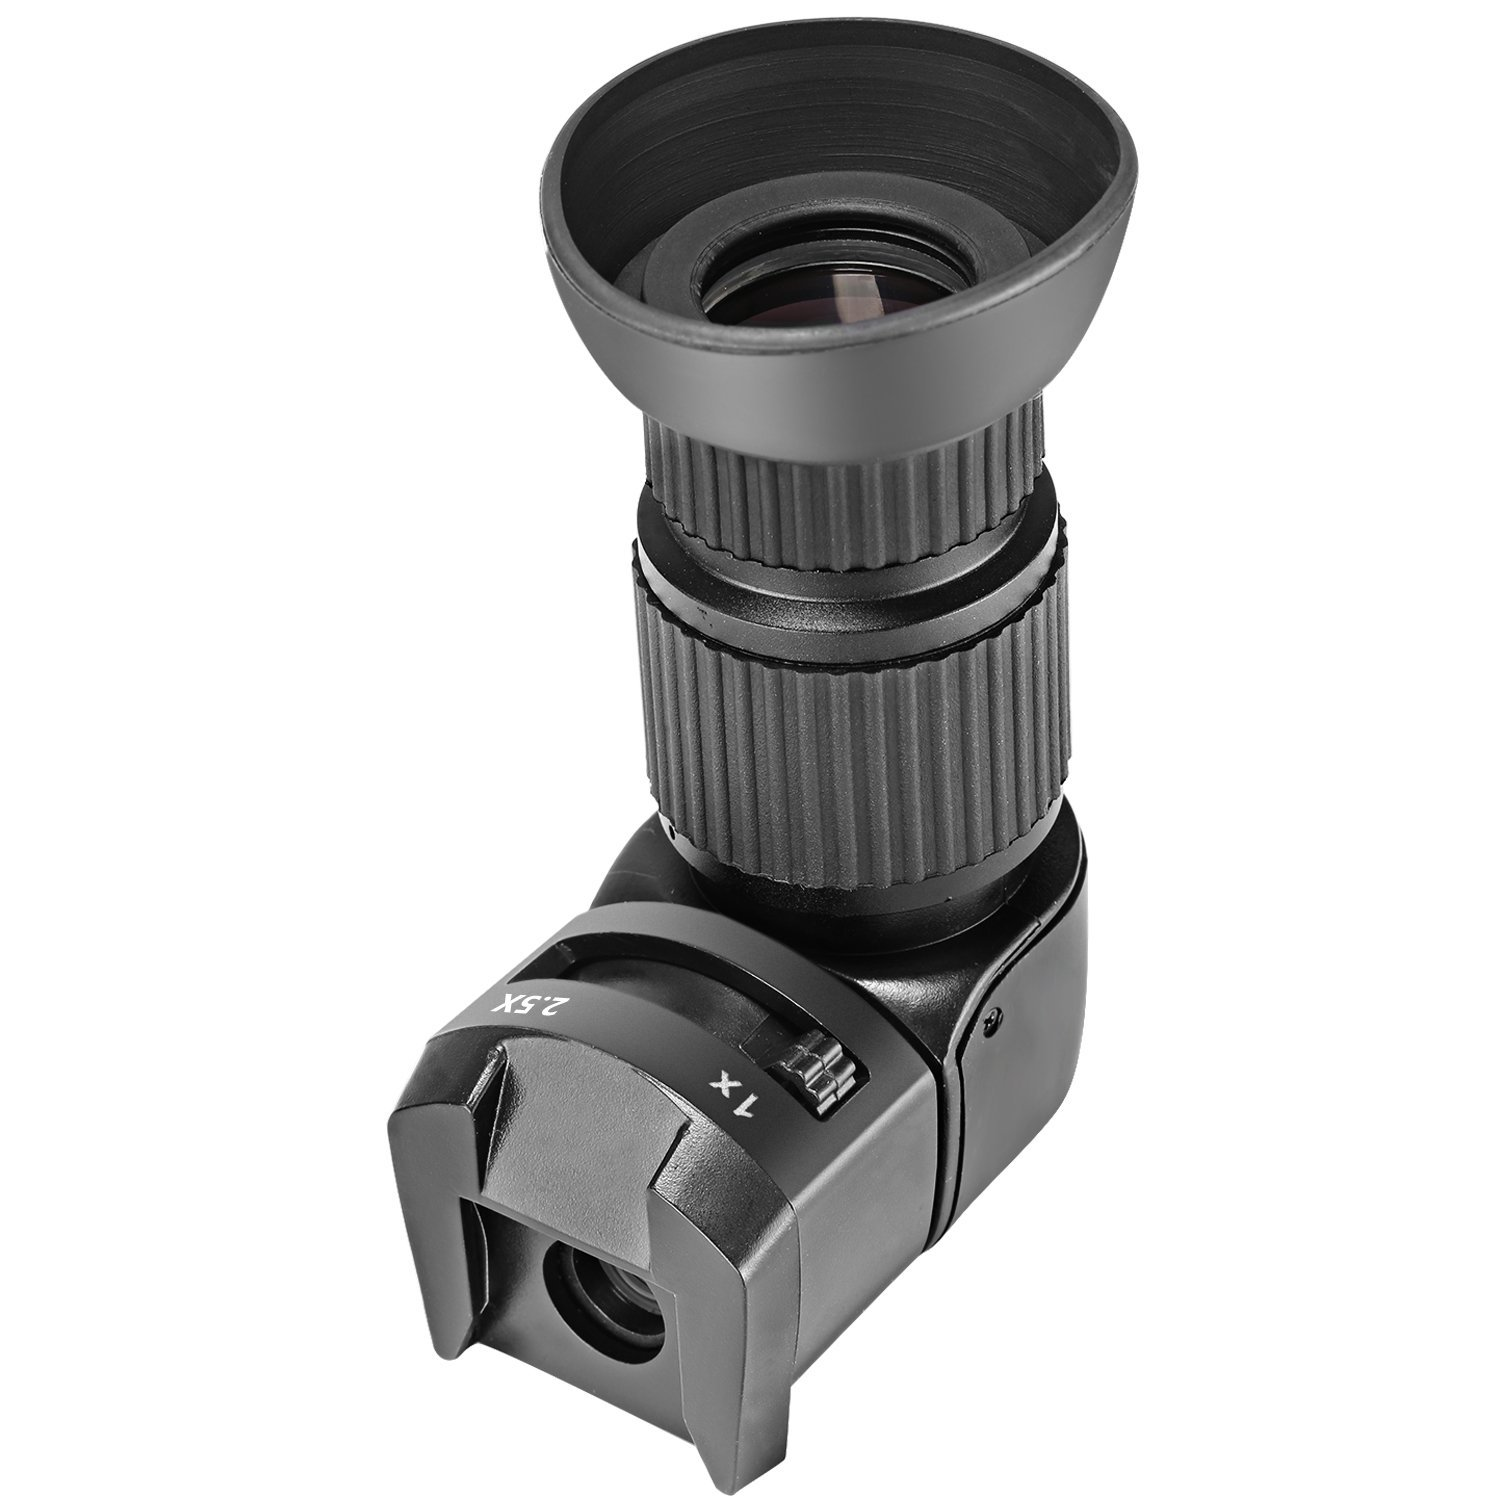 Neewer Perfect 1x-2.5x Right Angle Viewfinder for Canon, Nikon, Pentax, Panasonic and Other Digital SLR Cameras